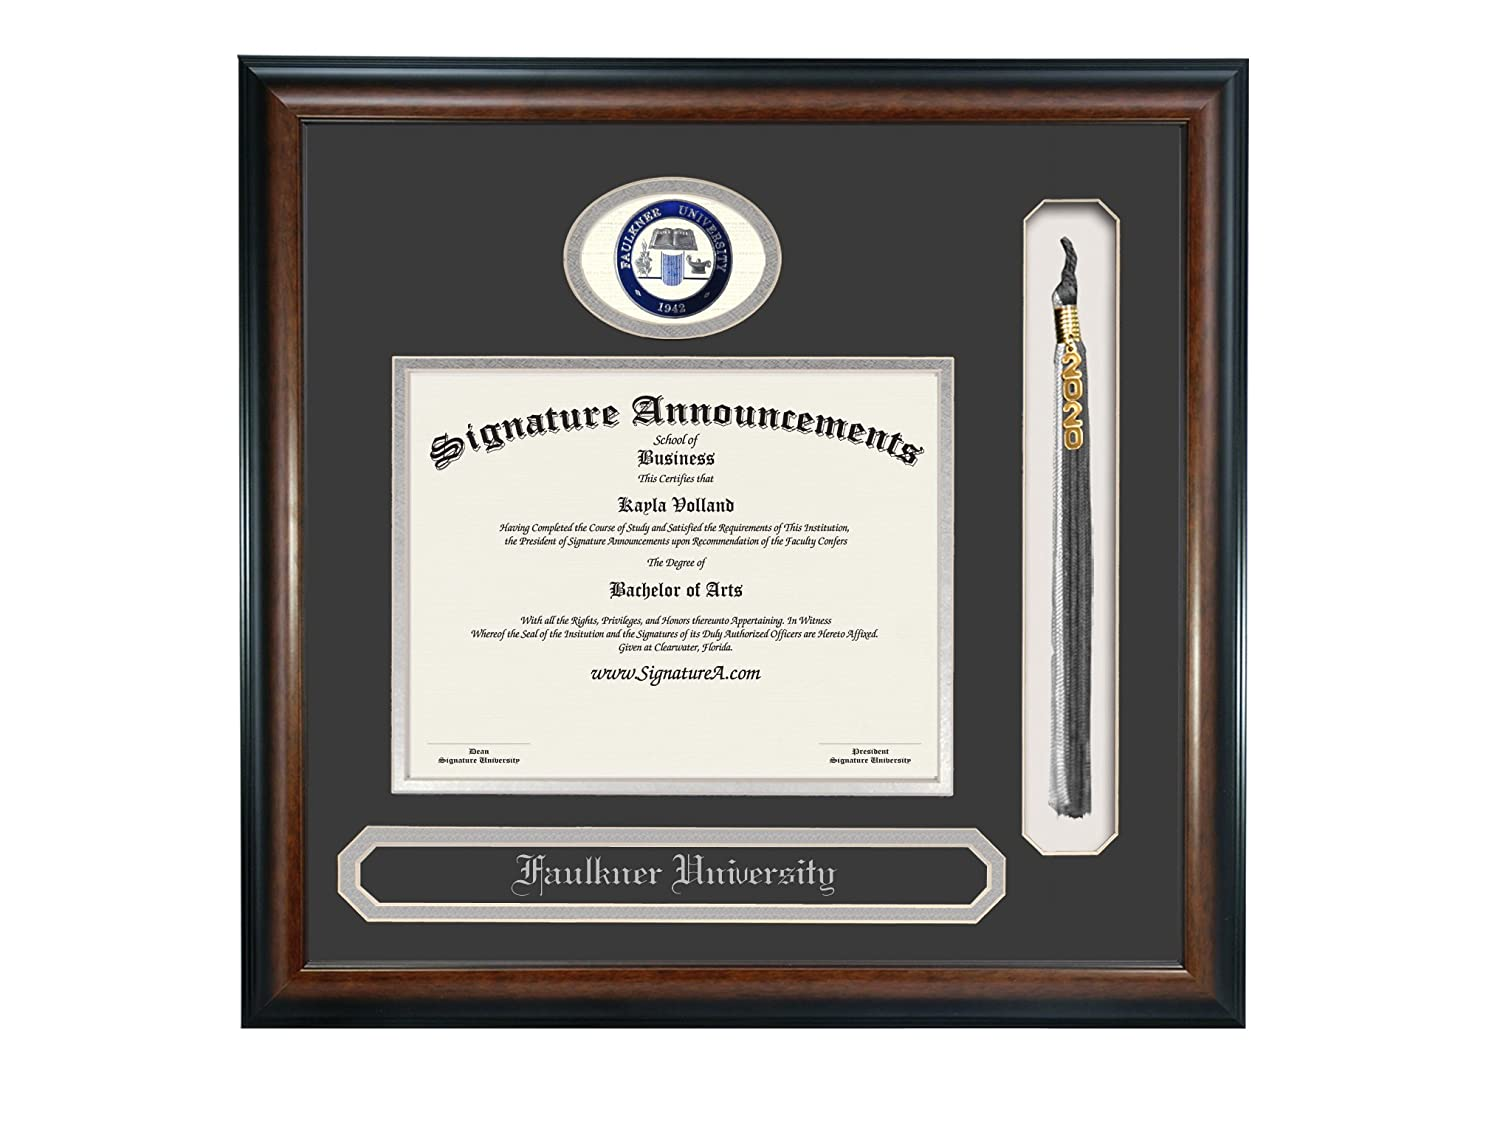 Professional//Doctor Sculpted Foil Seal Signature Announcements Faulkner University Undergraduate Name /& Tassel Graduation Diploma Frame 16 x 16 Matte Mahogany